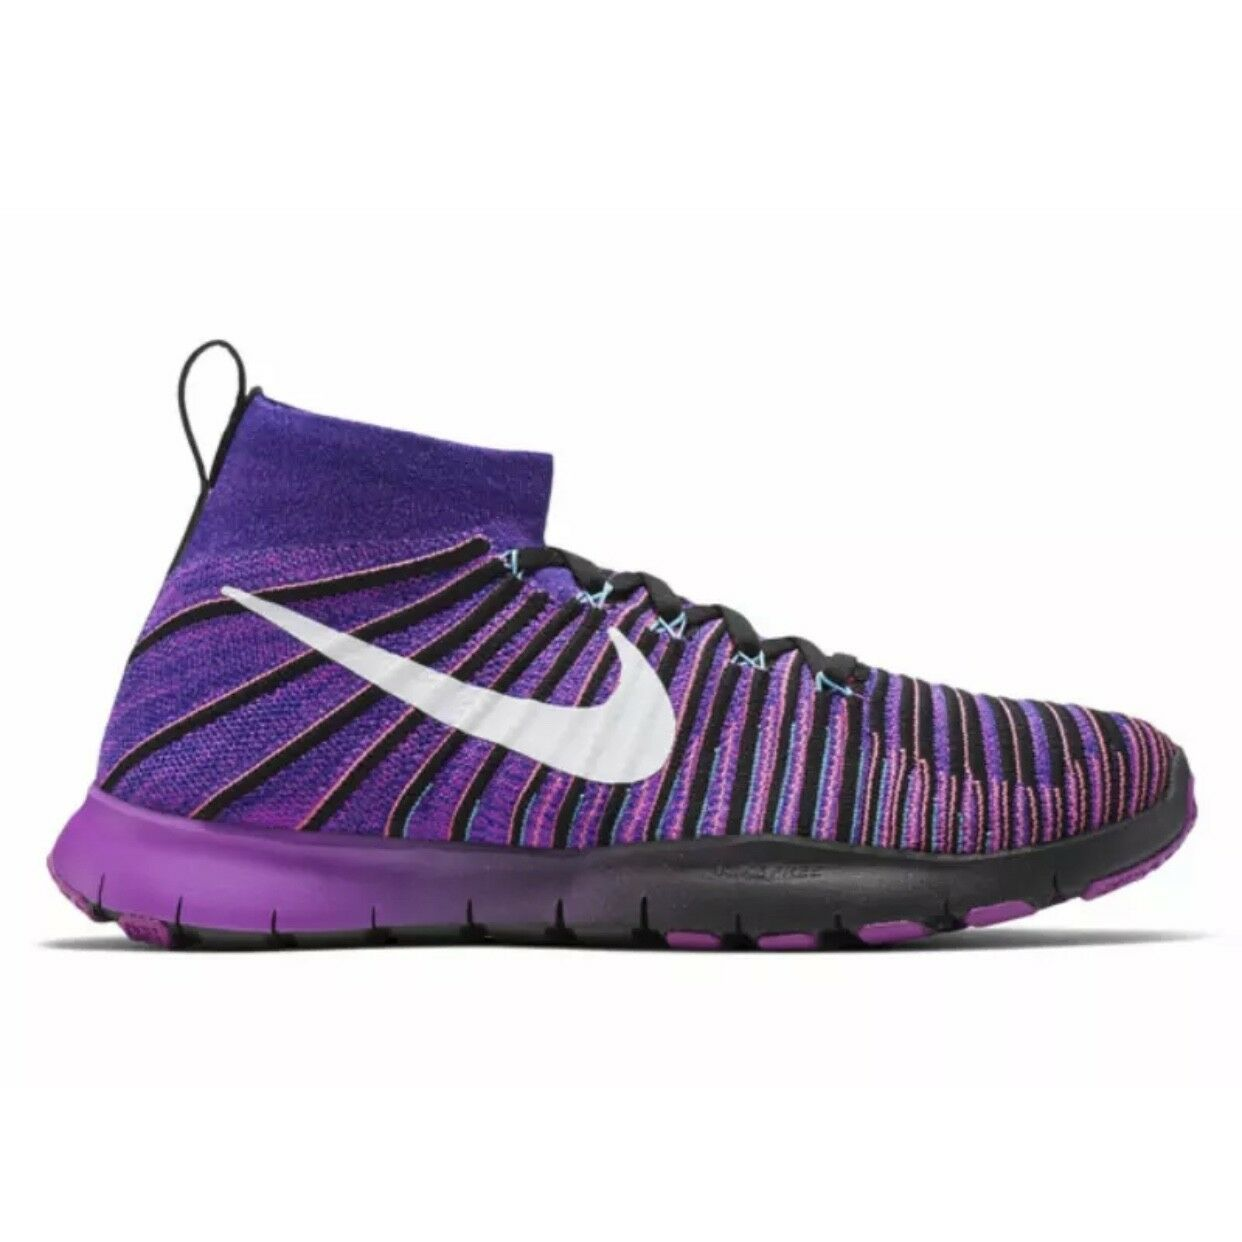 Nike Free TR Shoes Force Flyknit Concord/Vvd Purple Shoes TR (833275 451) Size 10 b0fe31